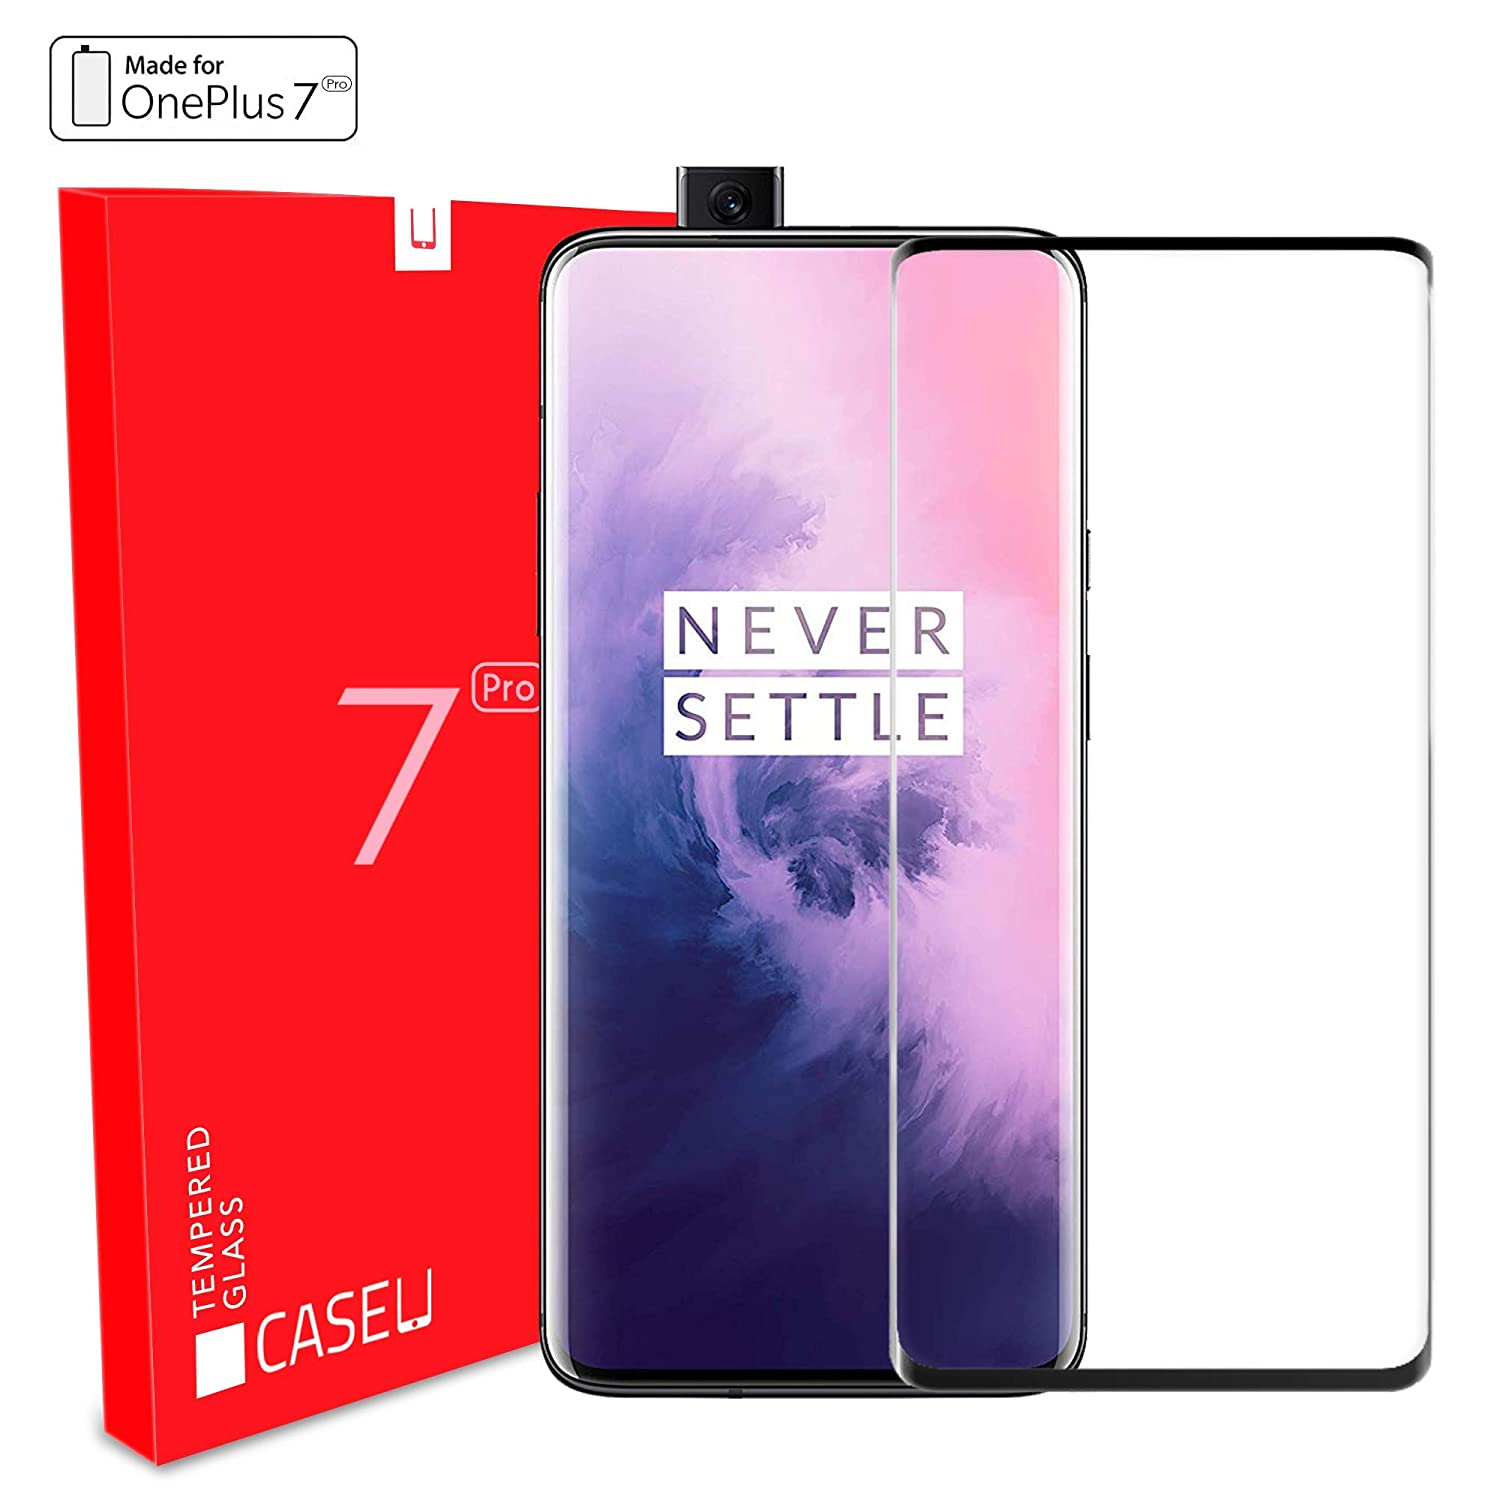 Case U Tempered Glass for OnePlus 7 Pro Edge to Edge Full Screen Coverage with Easy Installation kit (Pack of 1, Black)